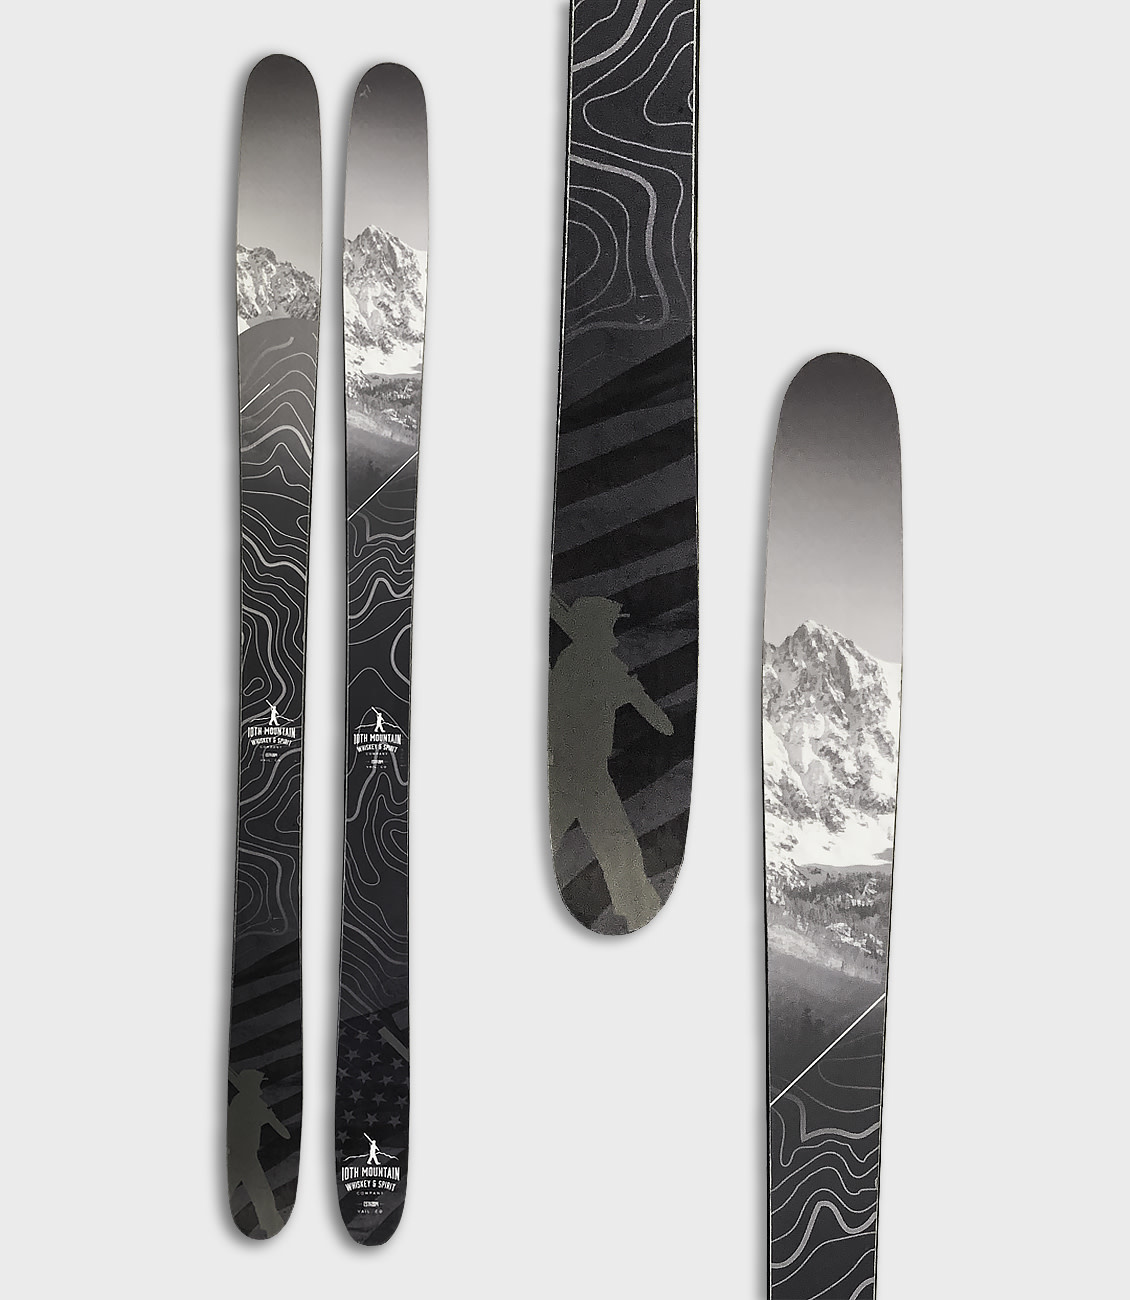 10th Mountain Whiskey & Spirit Co. Ski Raffle